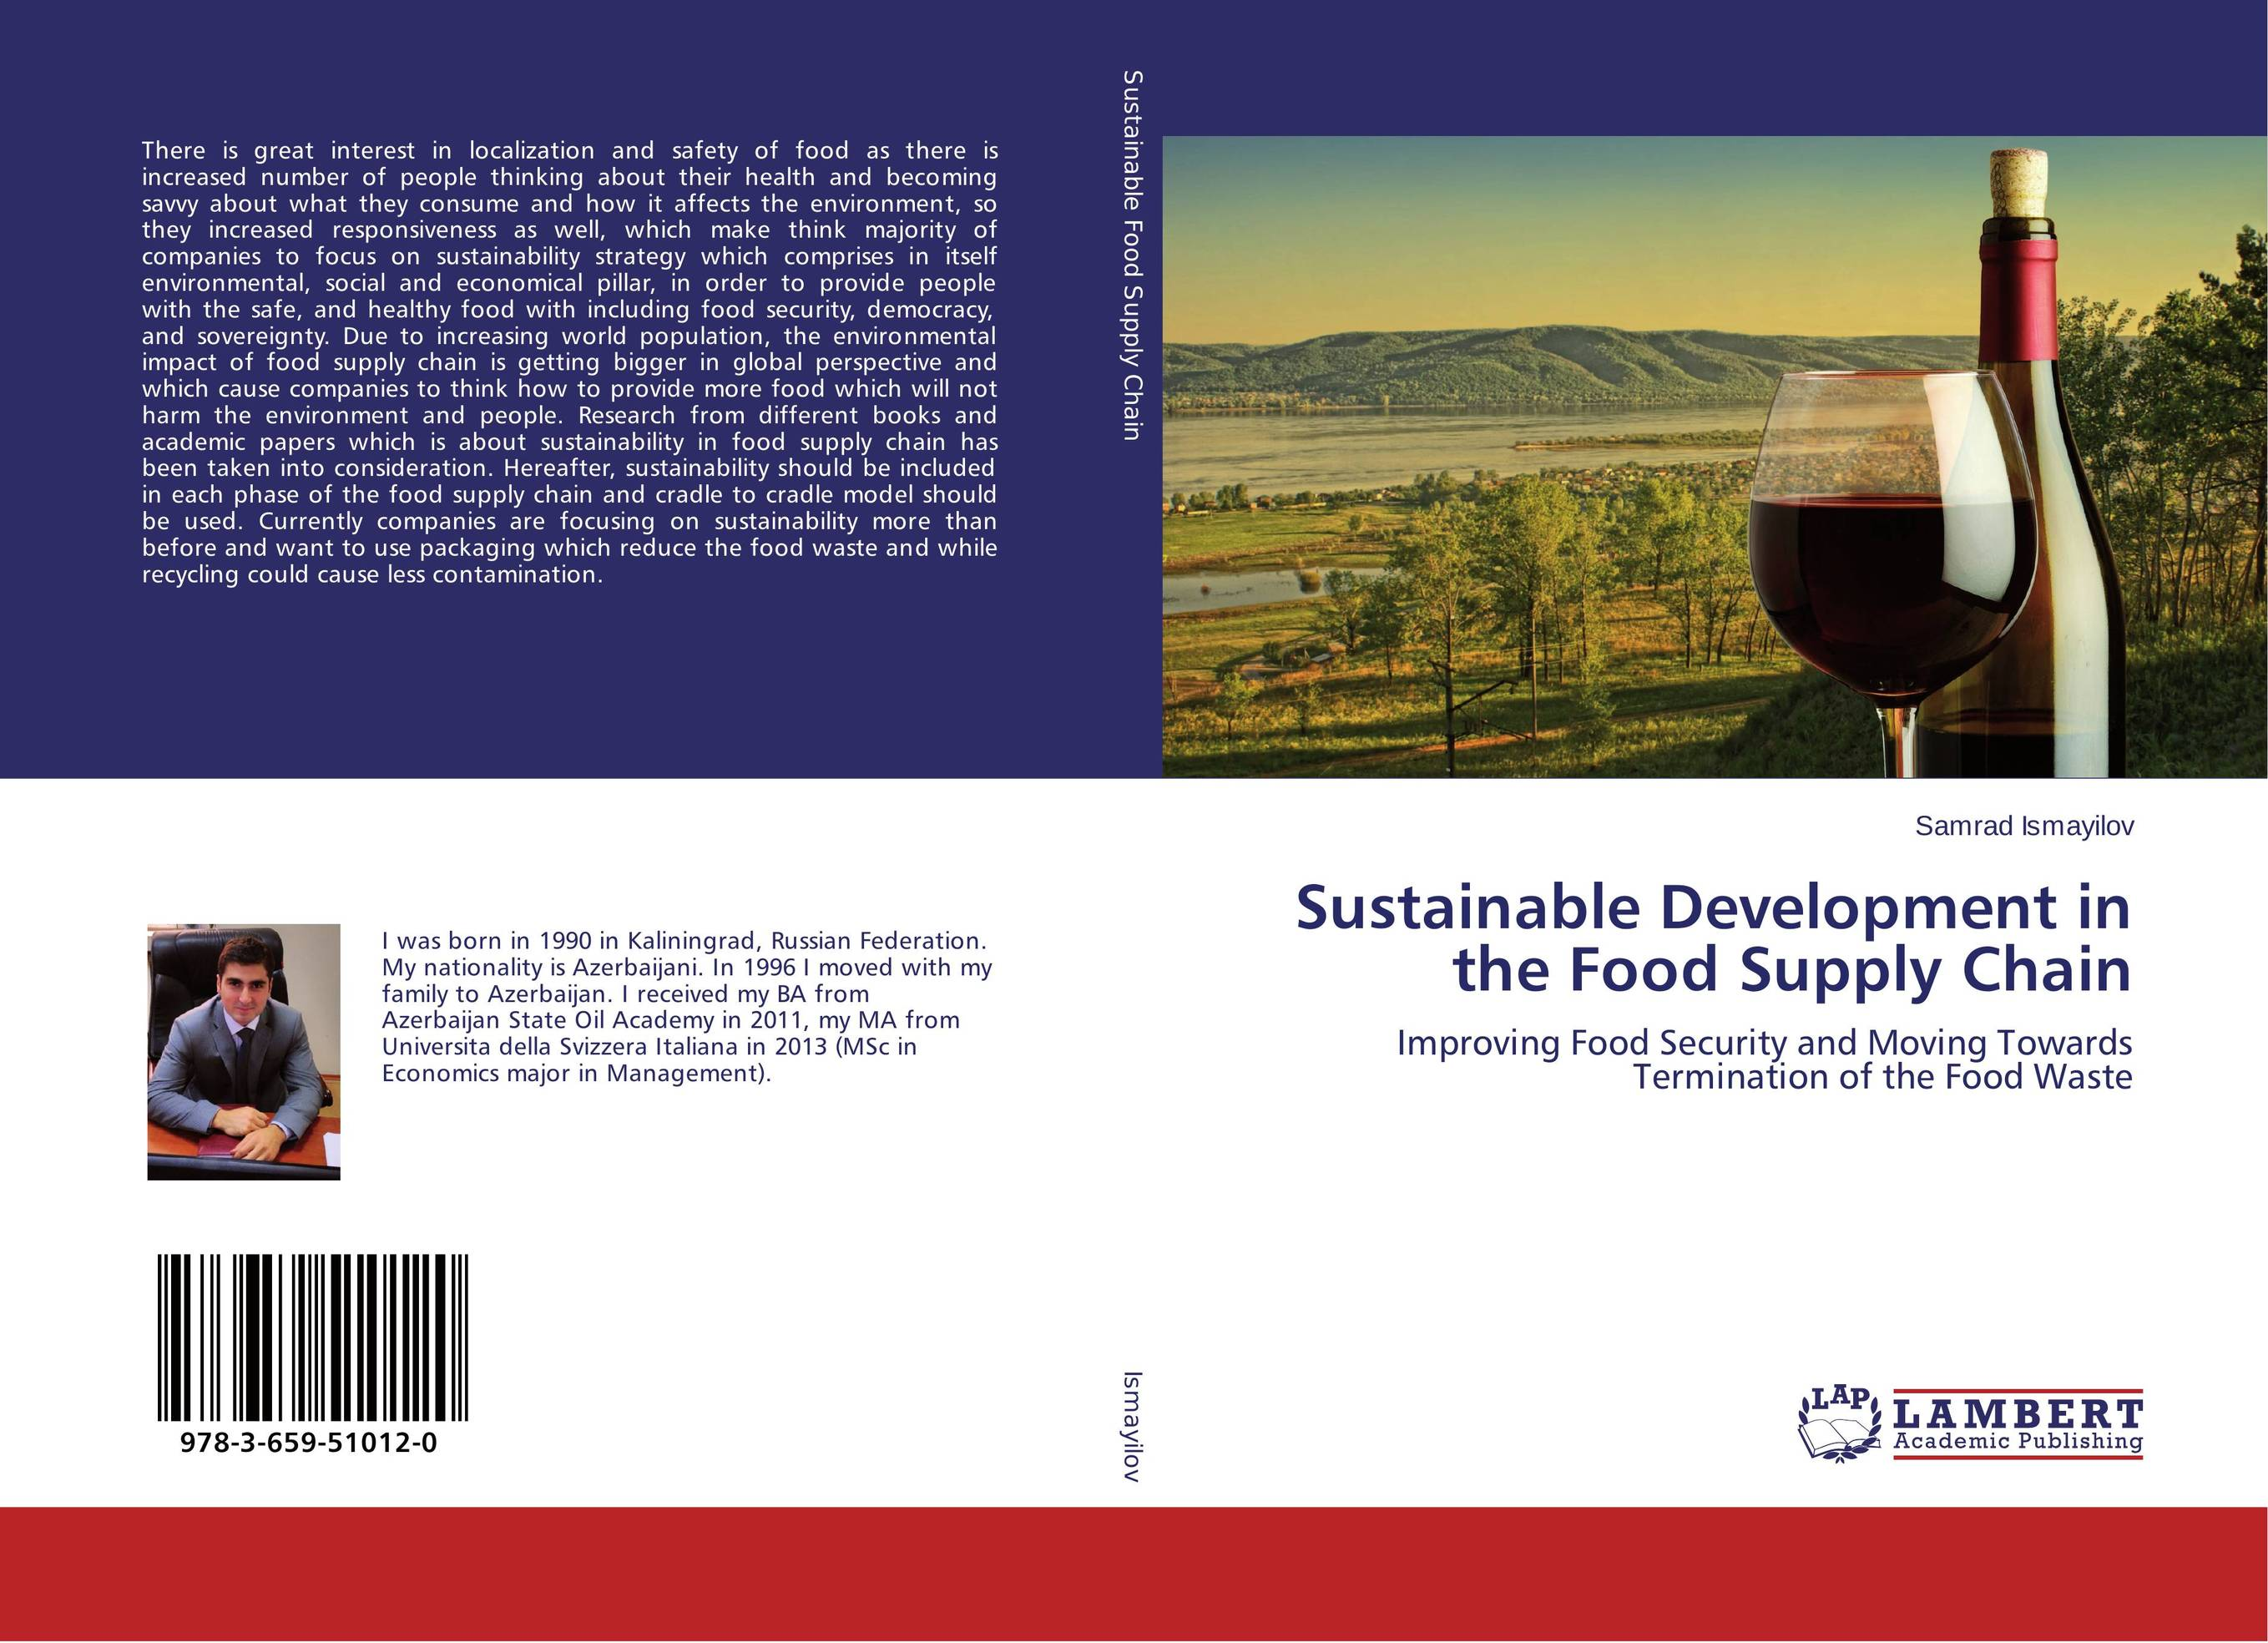 Sustainable Development in the Food Supply Chain cheryl baldwin j the 10 principles of food industry sustainability